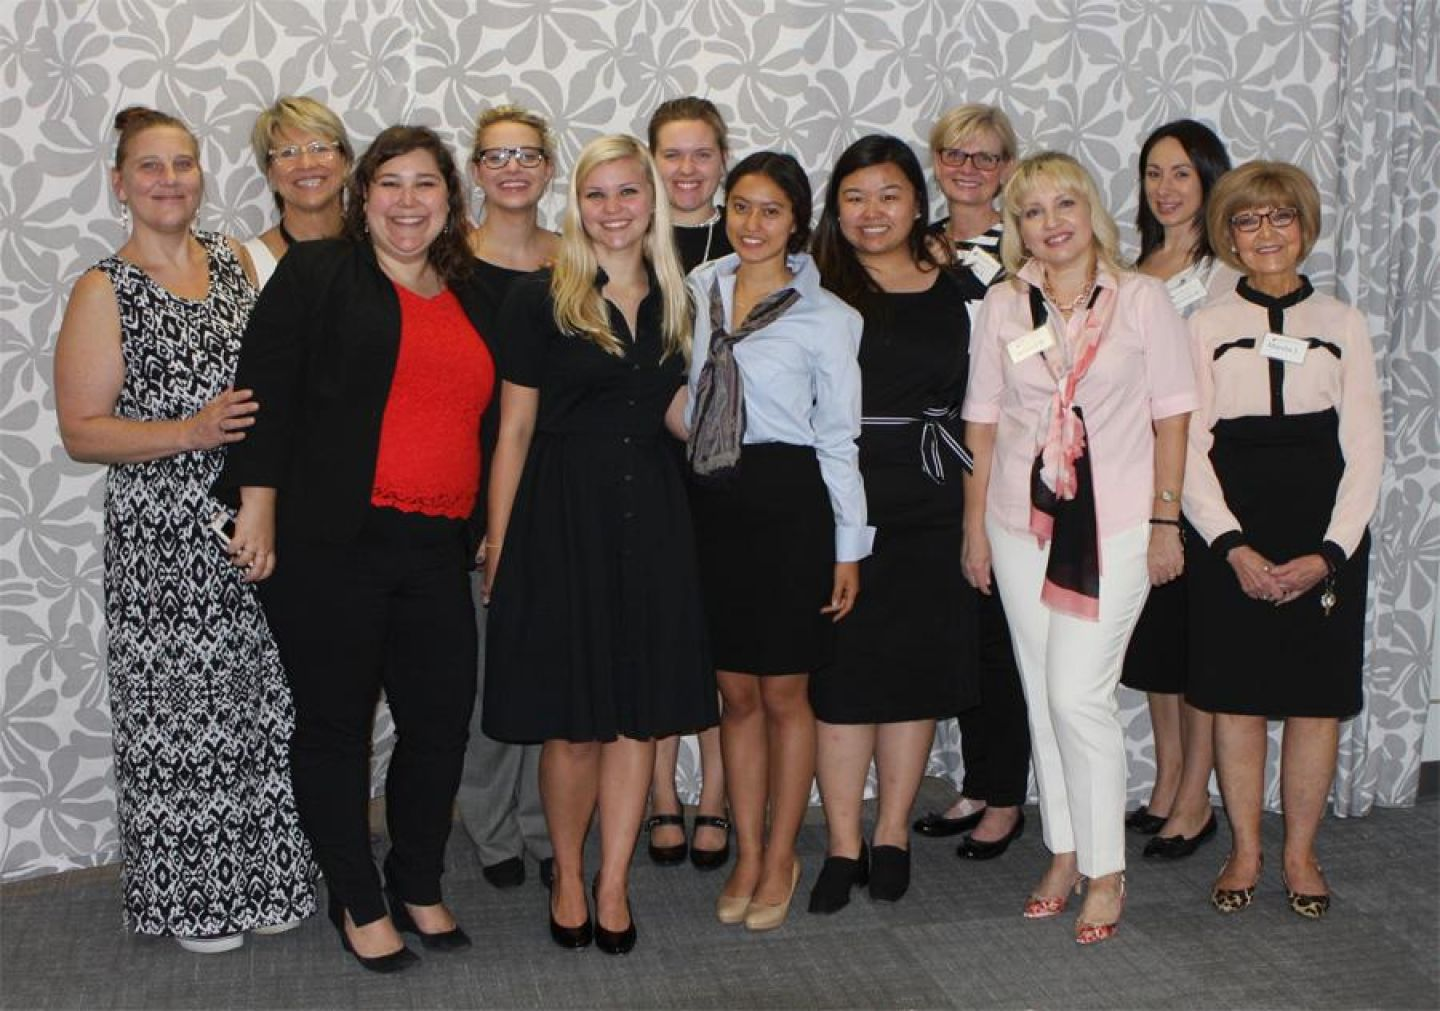 Career Ready interns, their new business attire and the image coaches who suited them. Photo includes Dress for Success spokesperson Lily Lamb. Photo by Jaelyn Miltz '20.